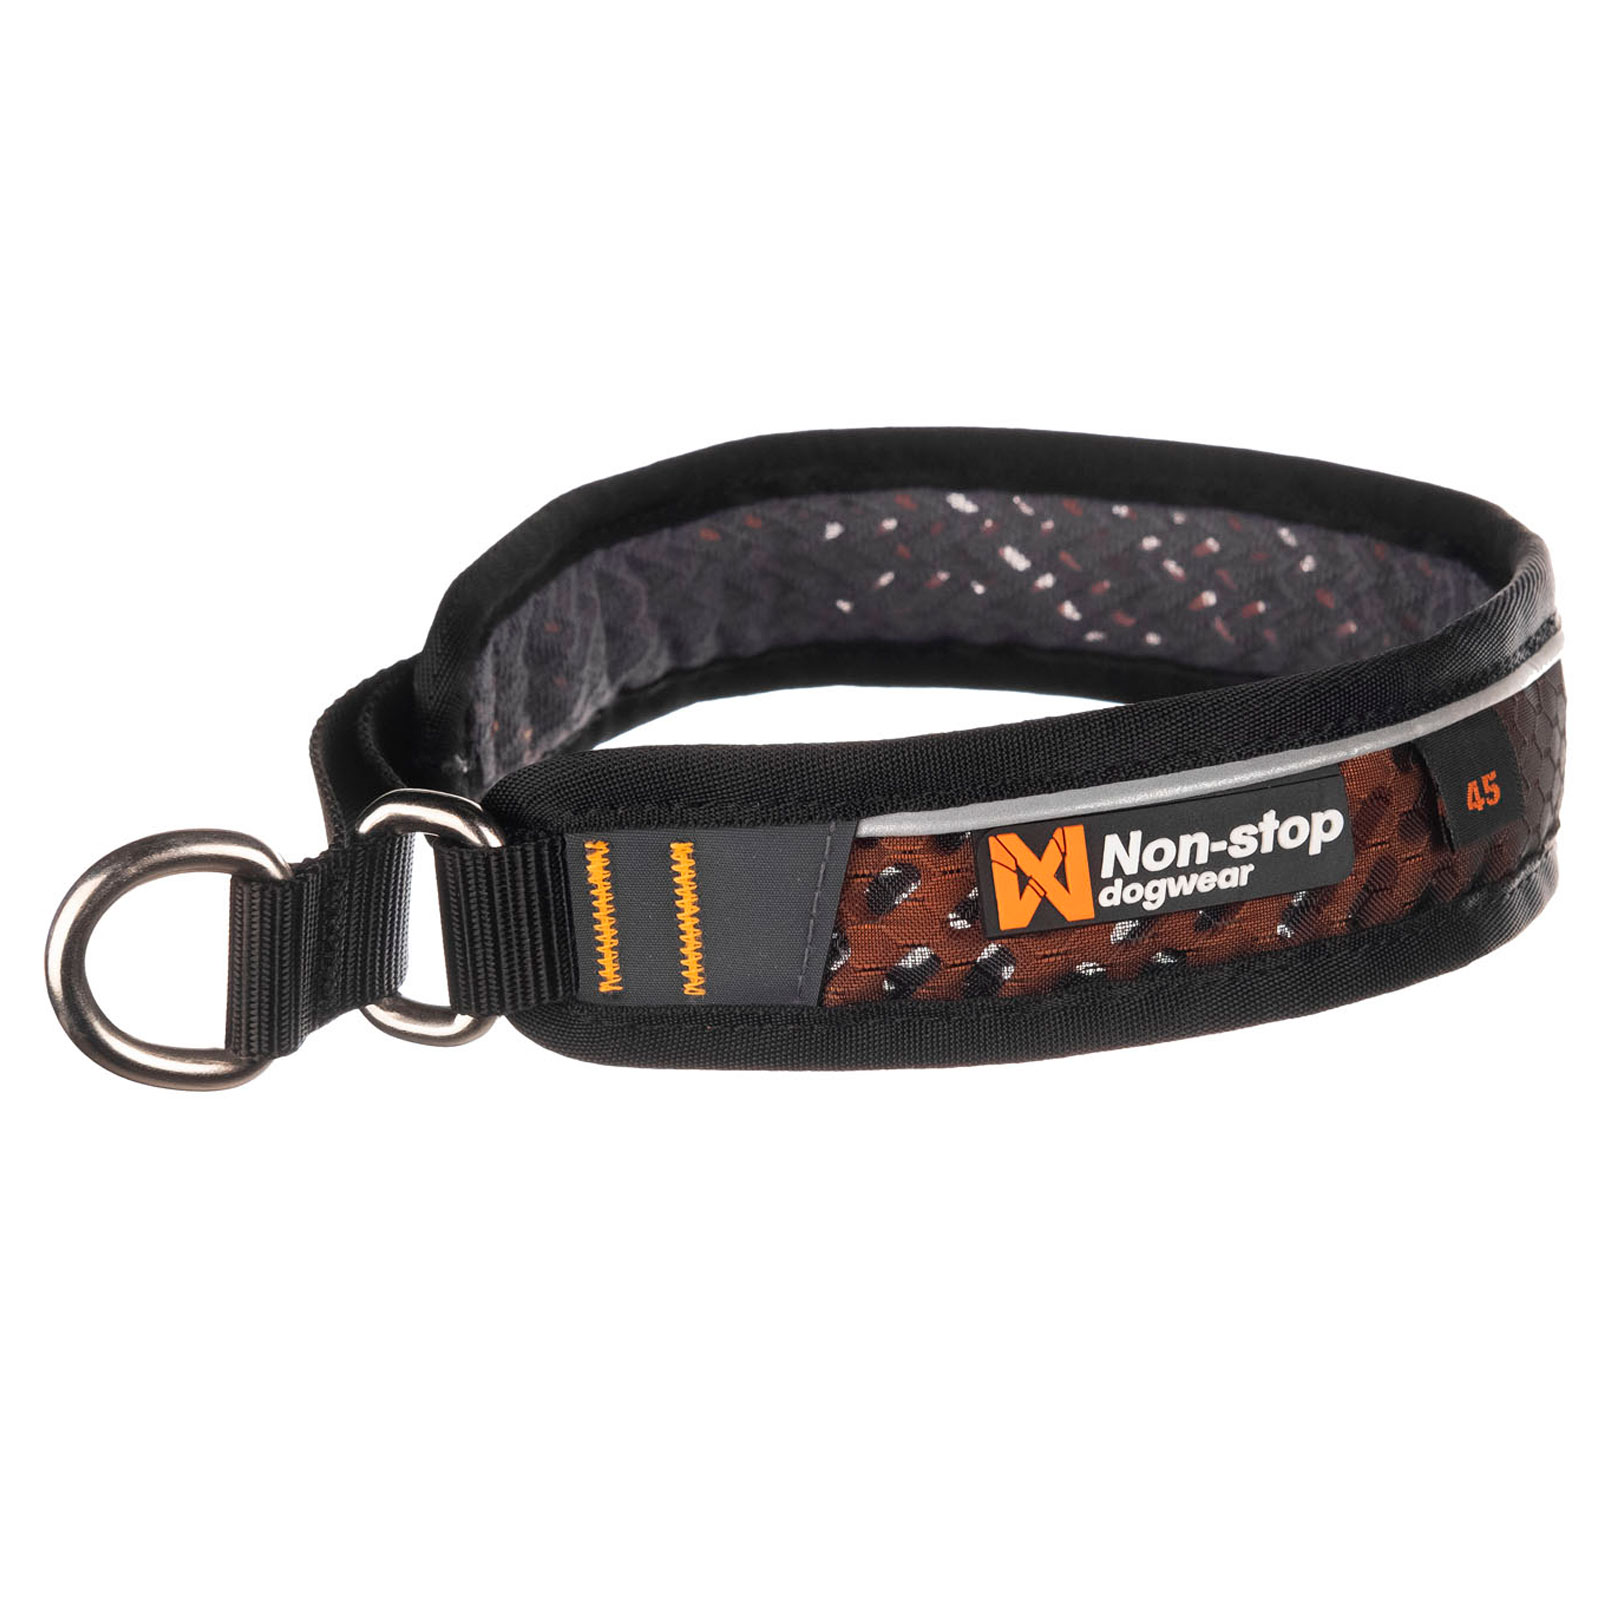 Non-stop dogwear Rock Collar black